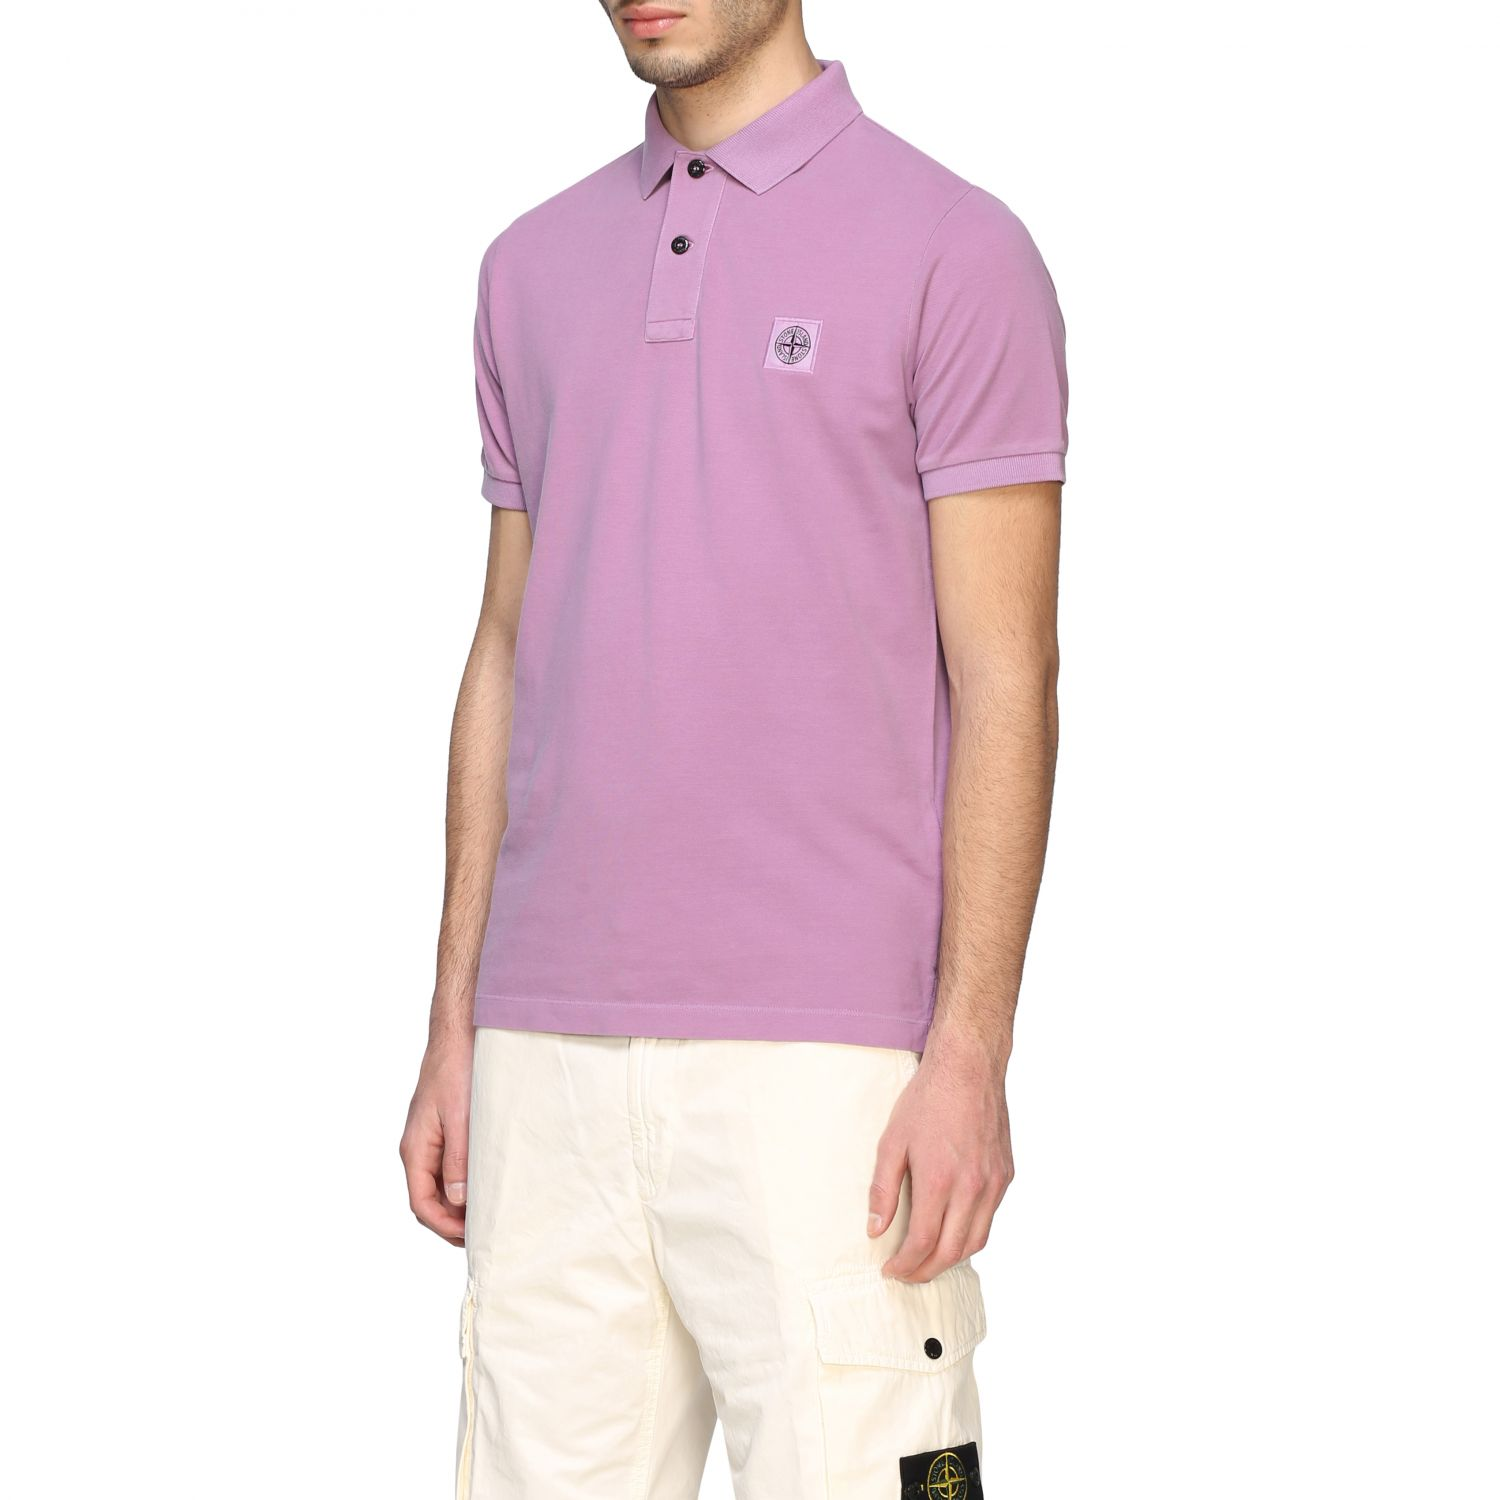 Stone Island short-sleeved polo shirt pink 4